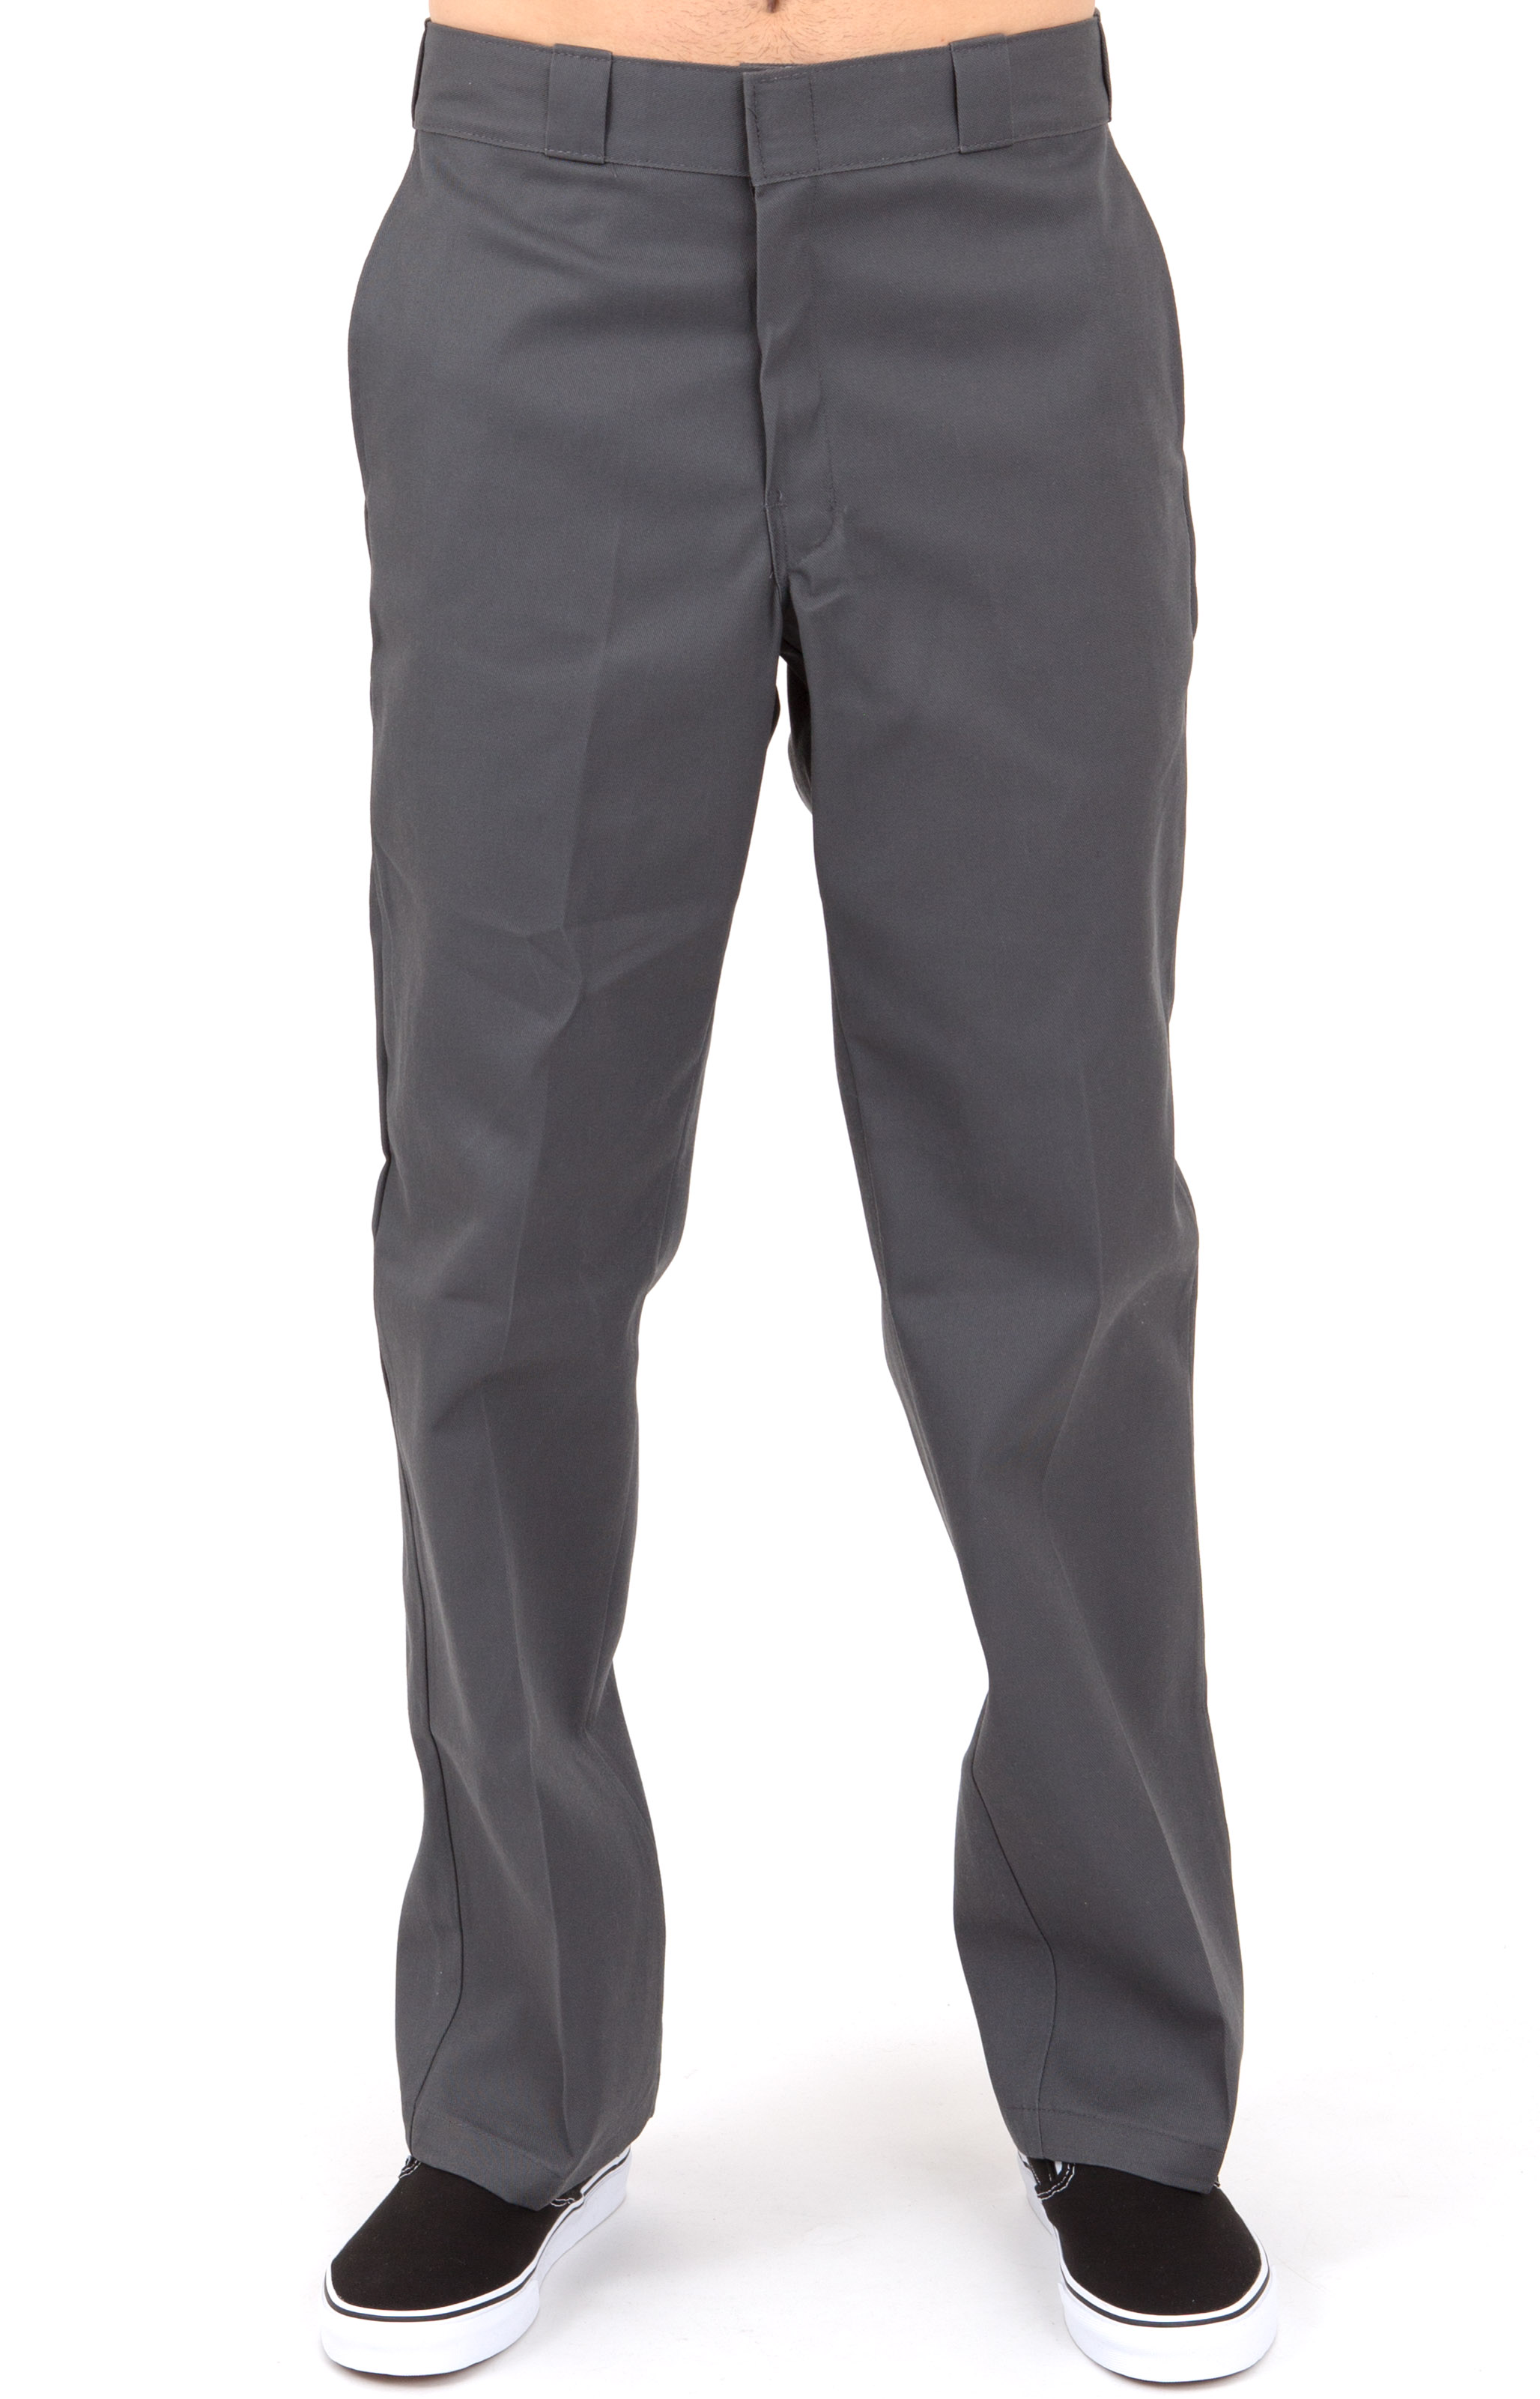 Original 874 Work Pants - Charcoal